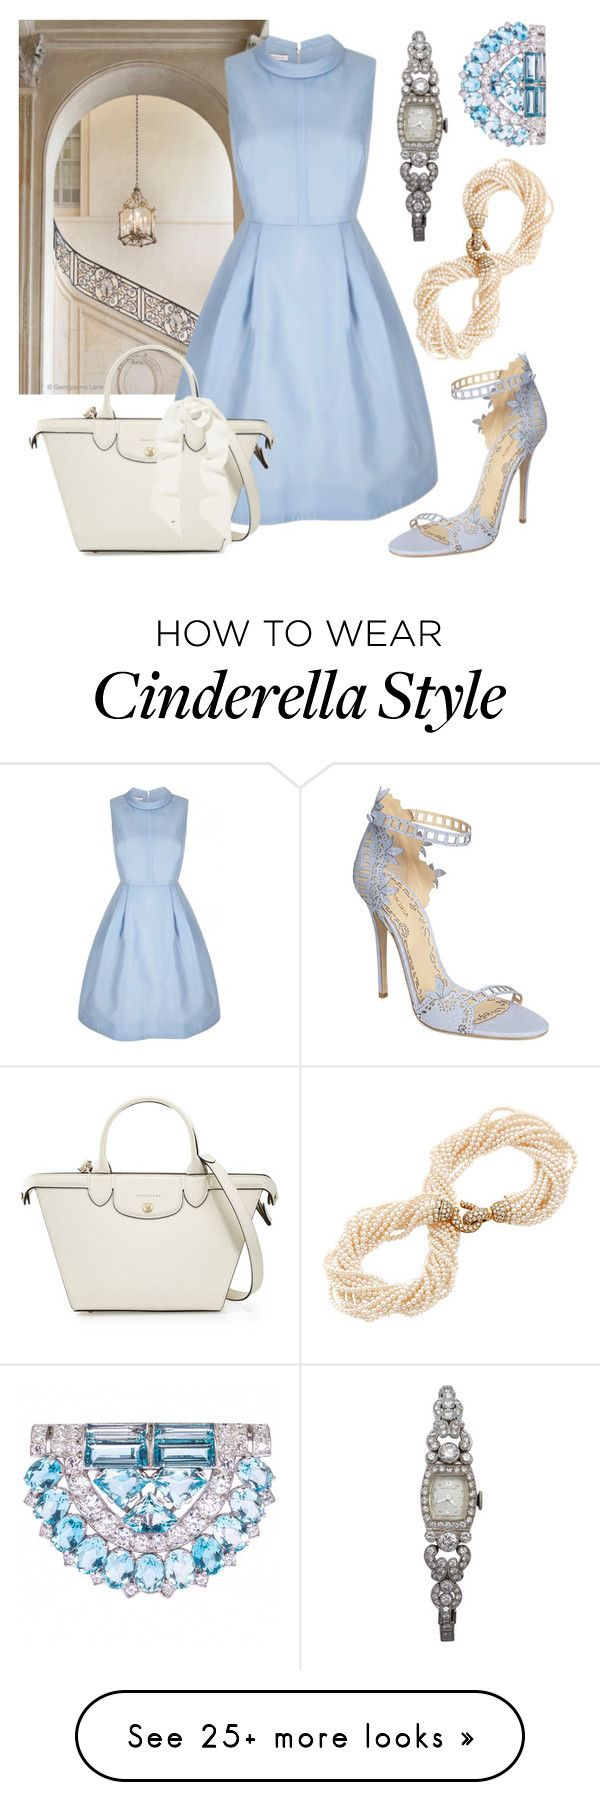 Pale Blue Pretty by aliciahgibson on Polyvore featuring Marchesa, Rodin, Longchamp, Yves Saint Laurent, Cartier, Hamilton and vintage